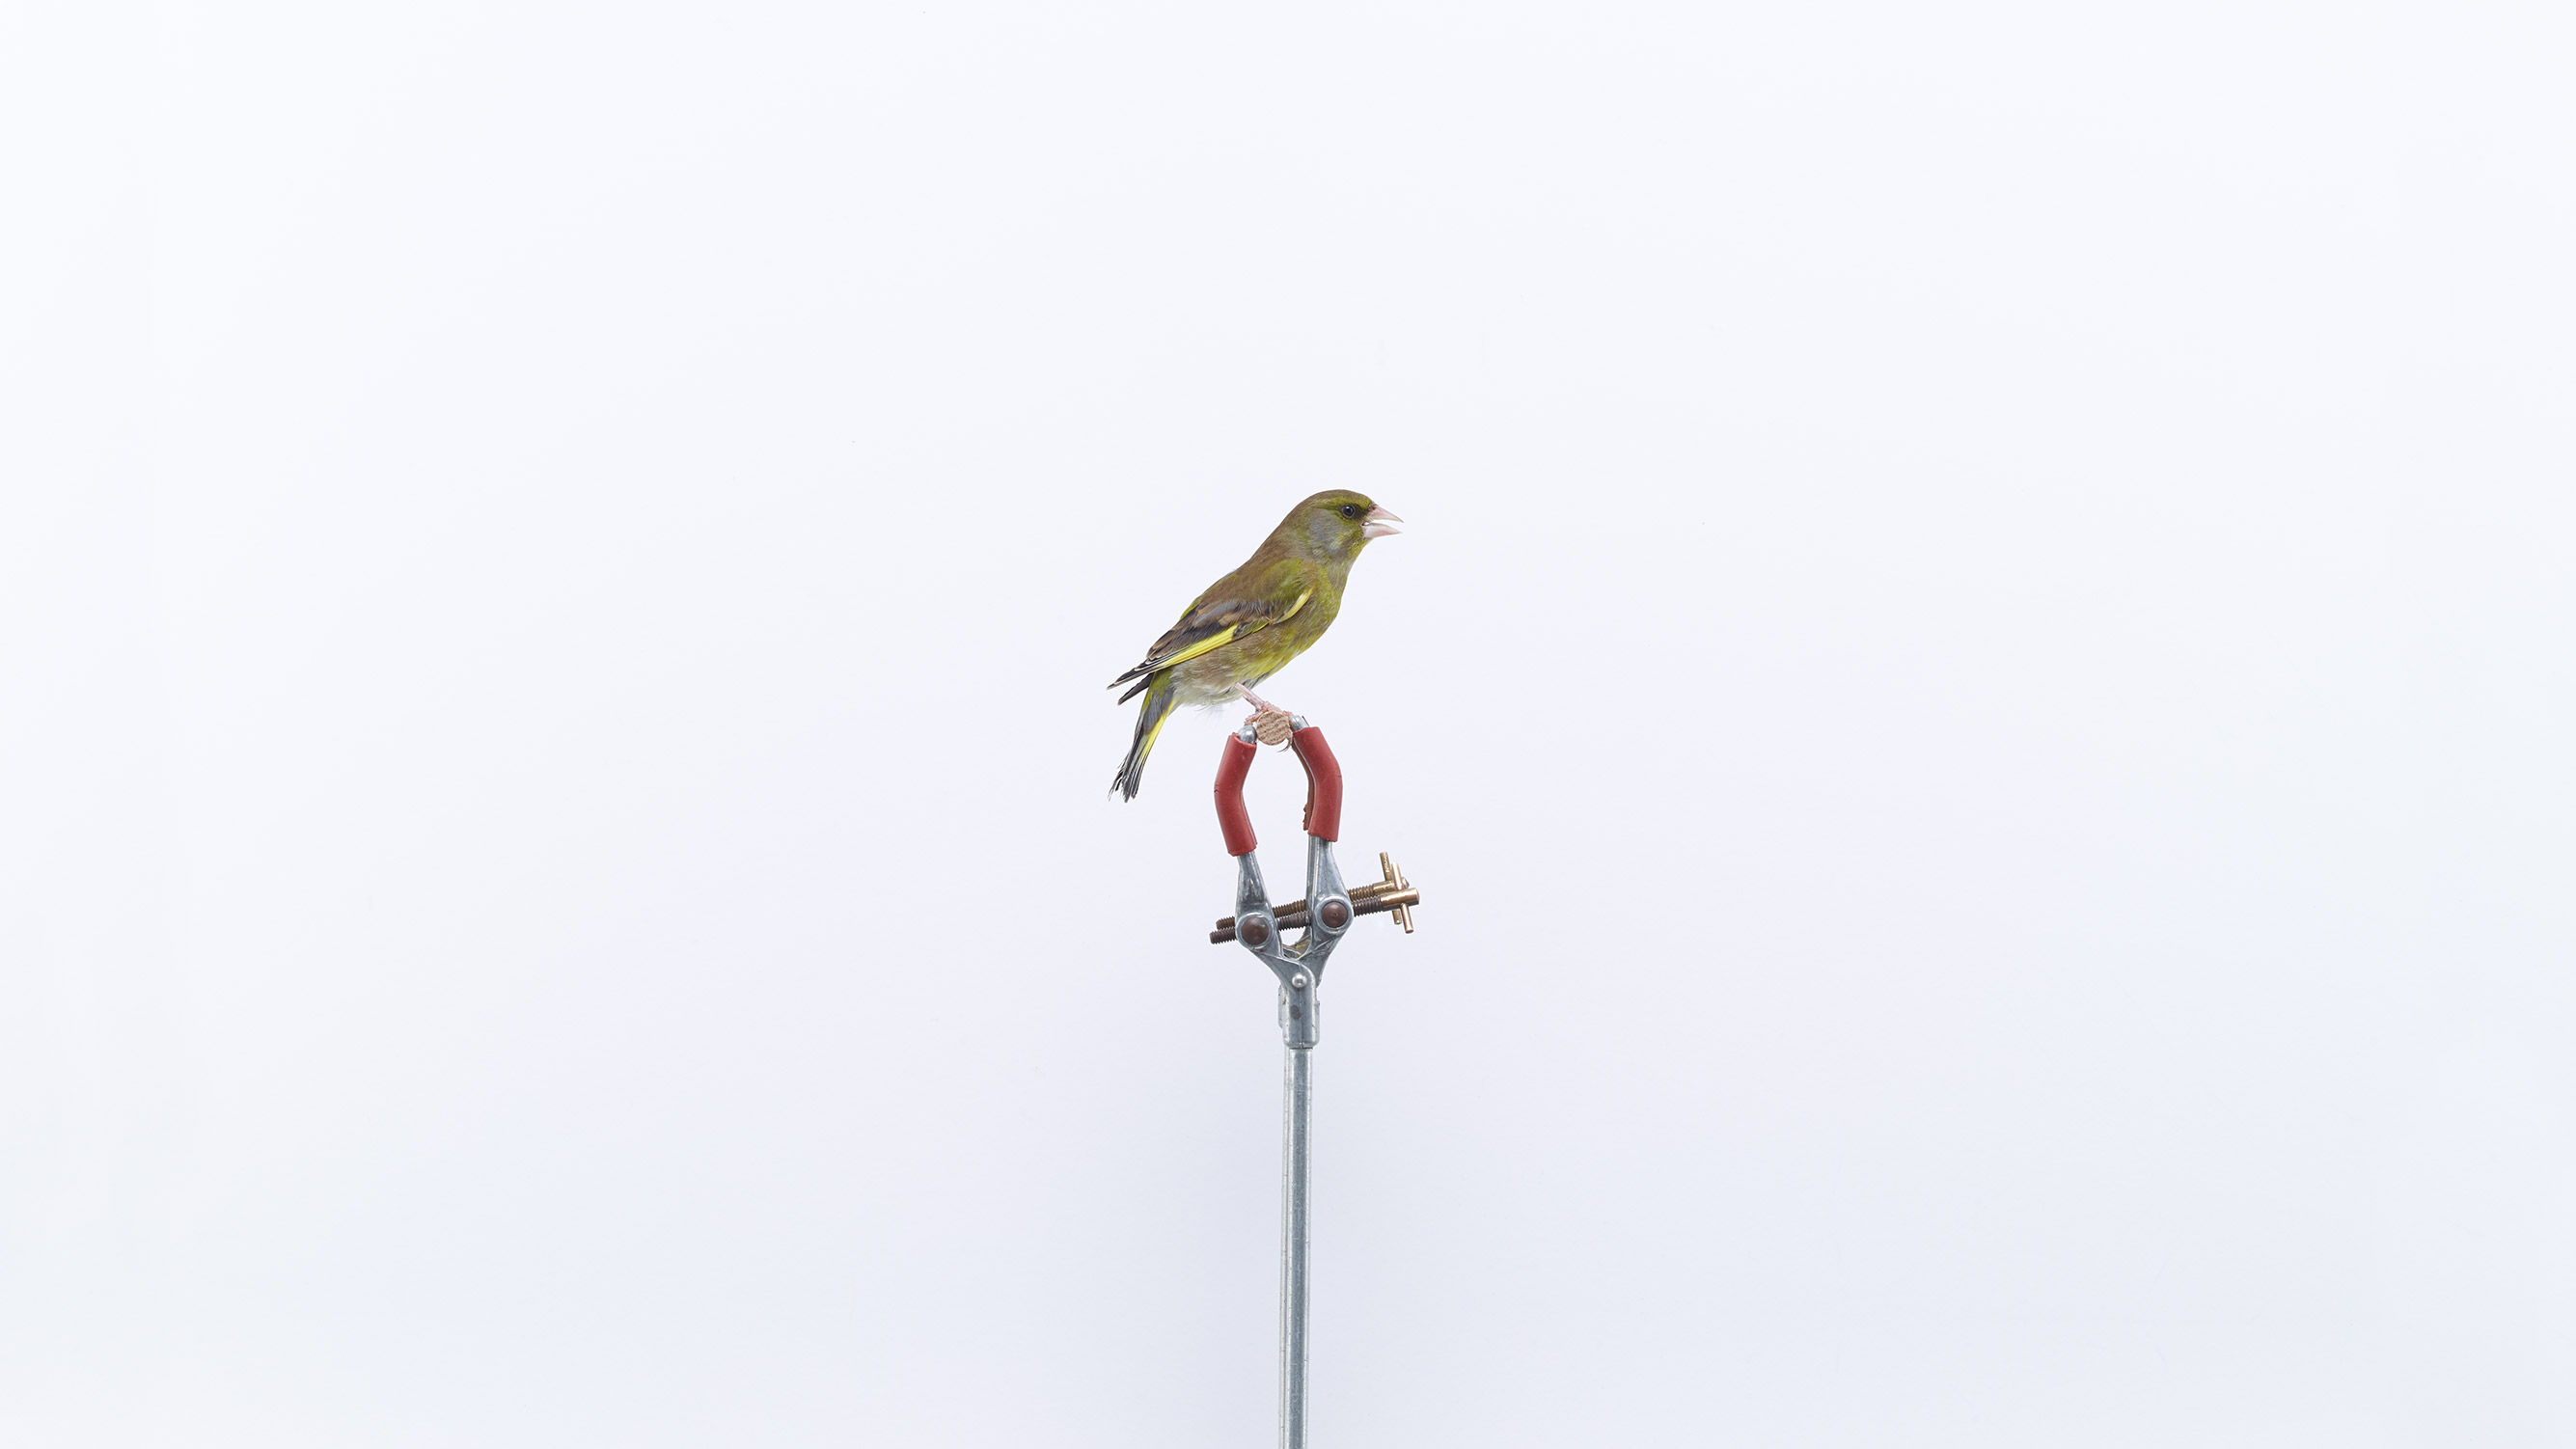 Browns Editions London Garden Birds, Greenfinch by Jonathan Ellery